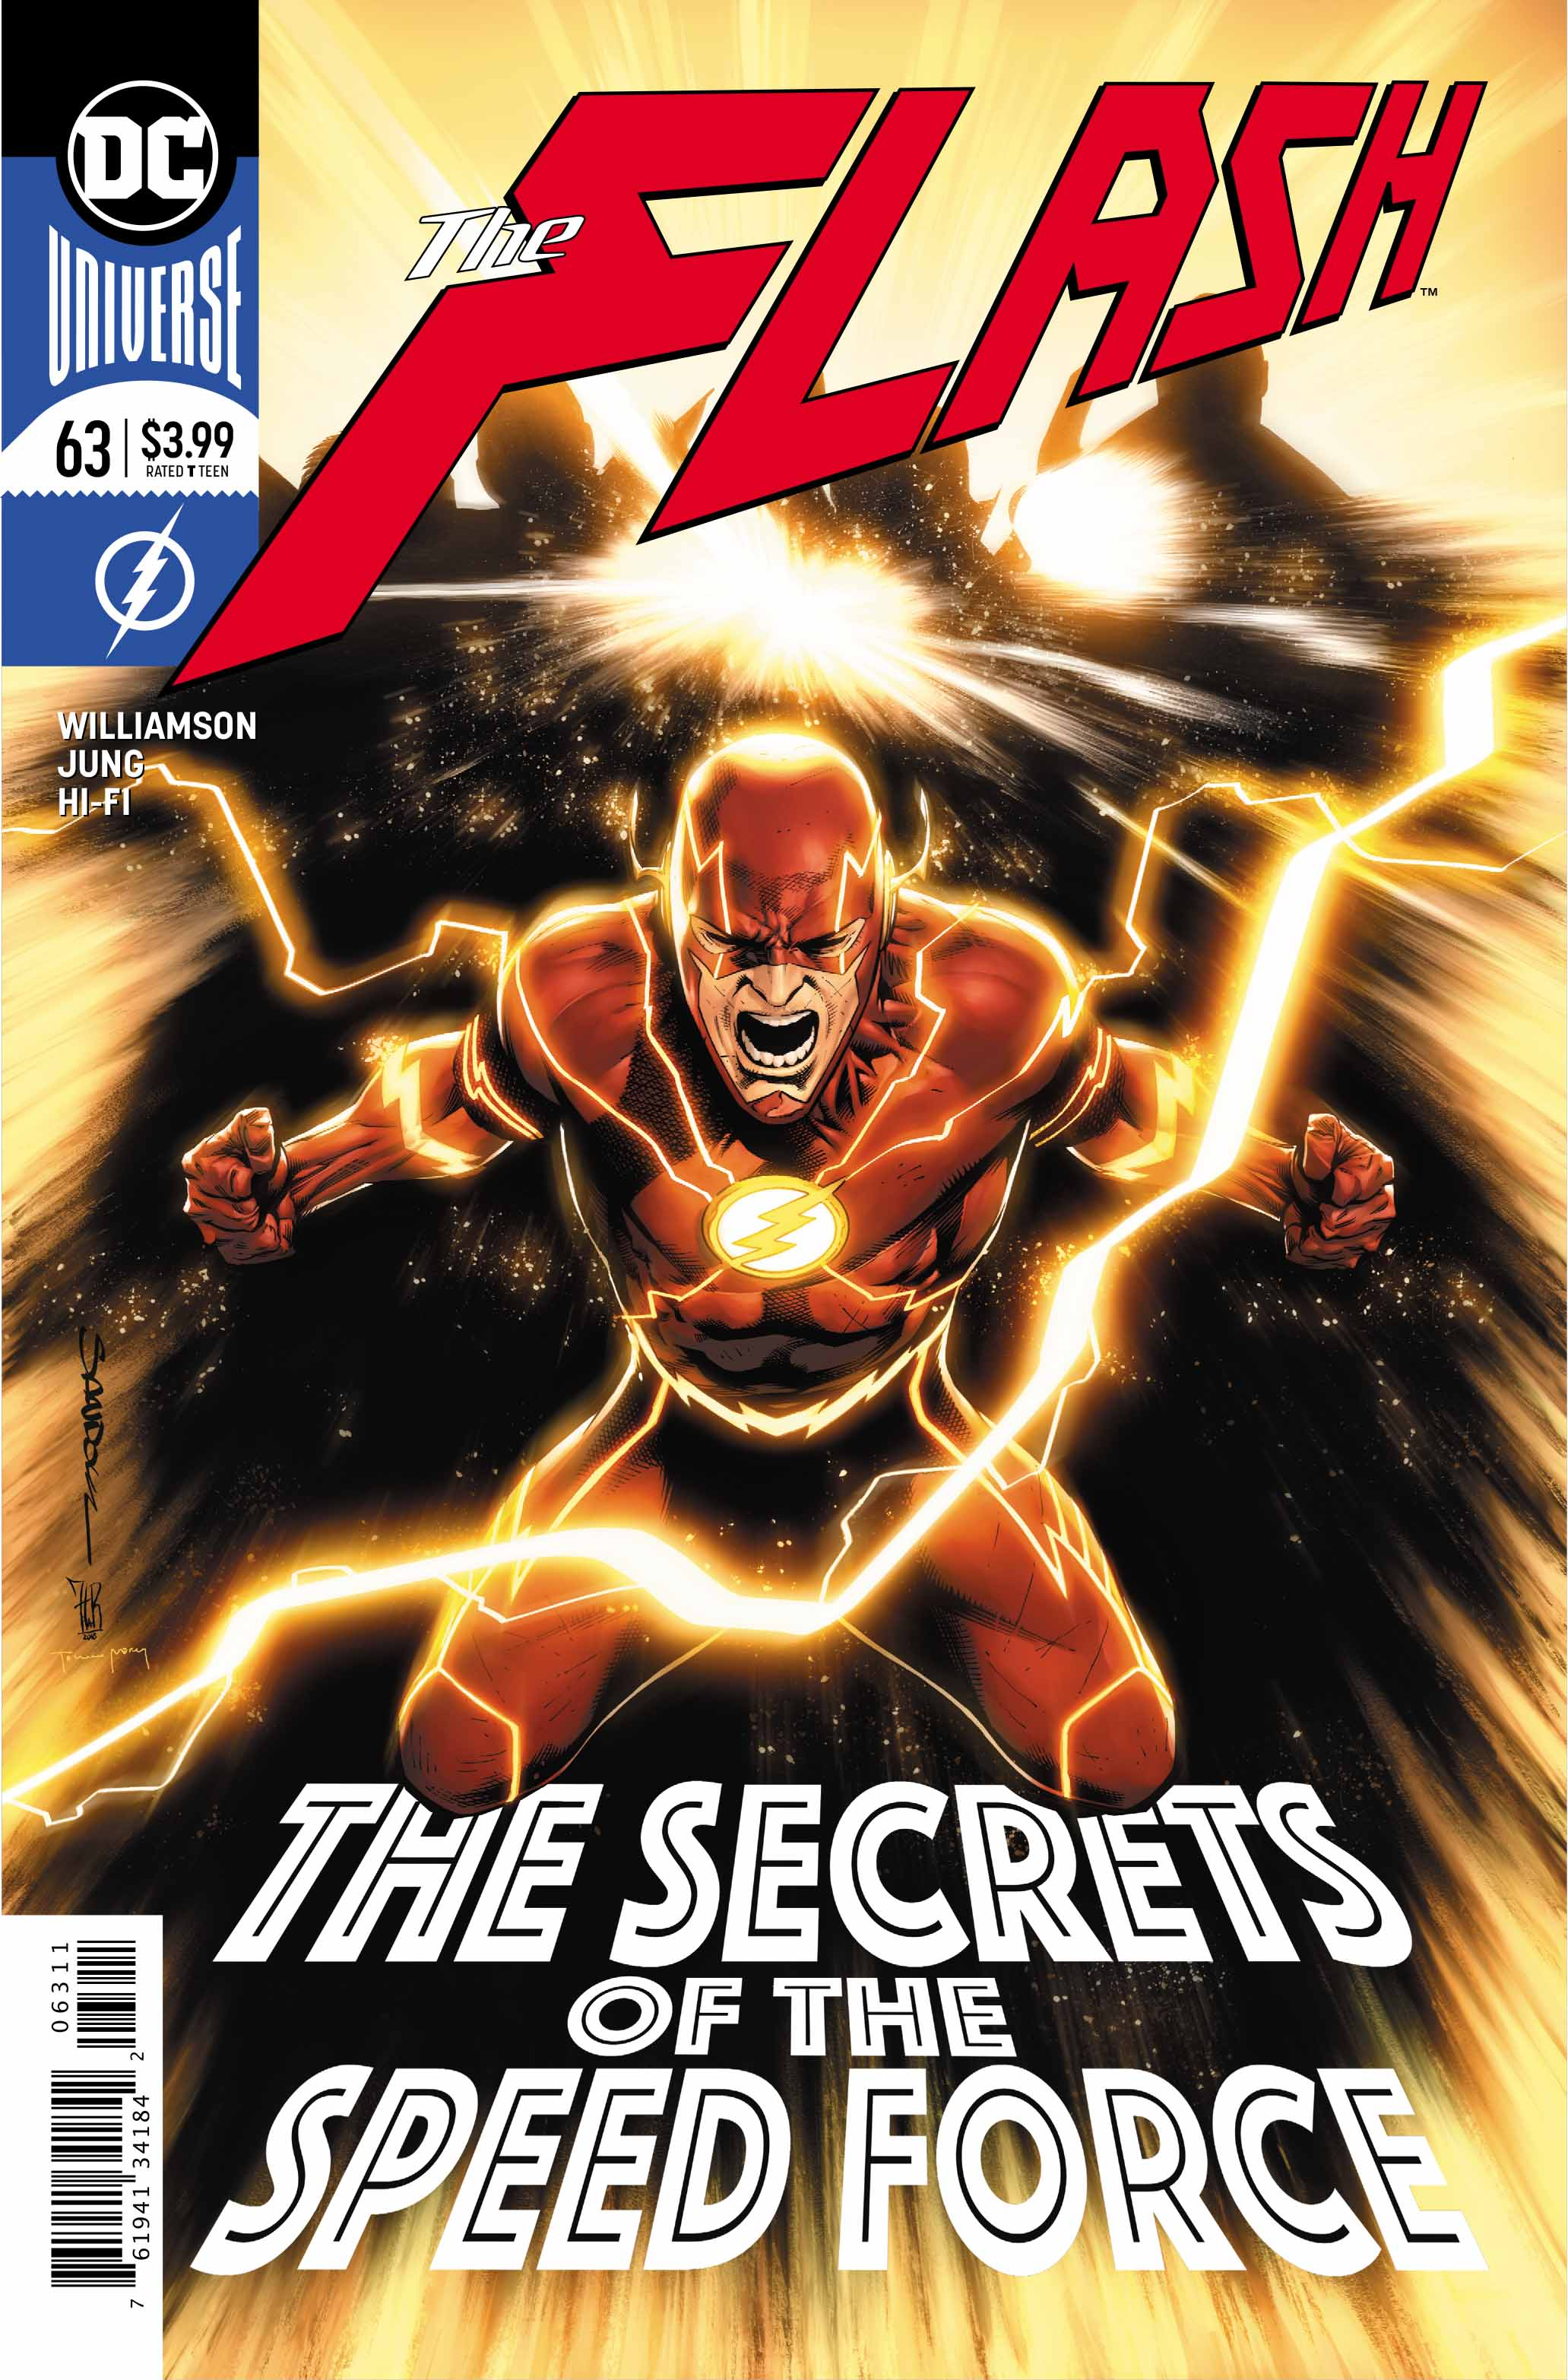 The Flash #63 Review